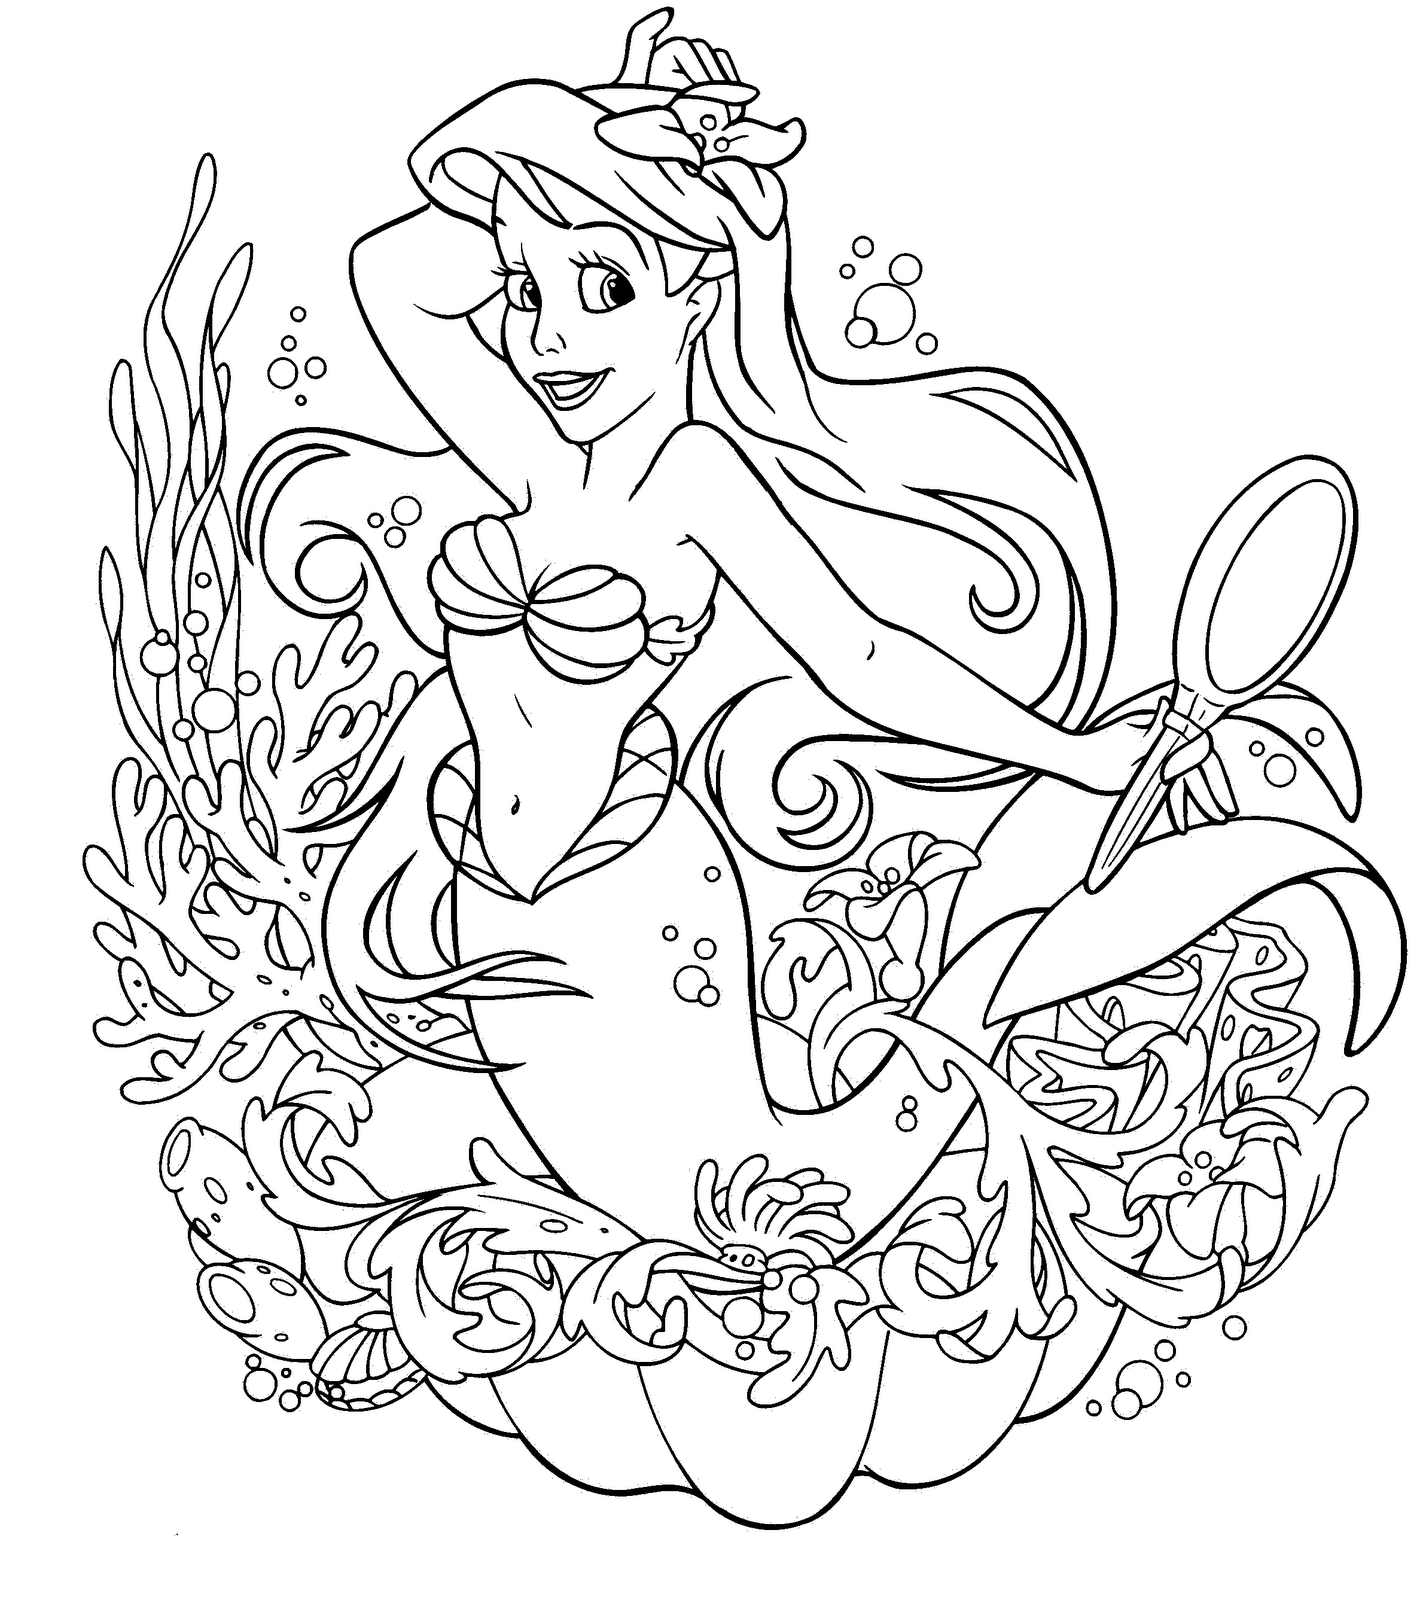 Disney Little Mermaid Coloring Page - Best Gift Ideas Blog